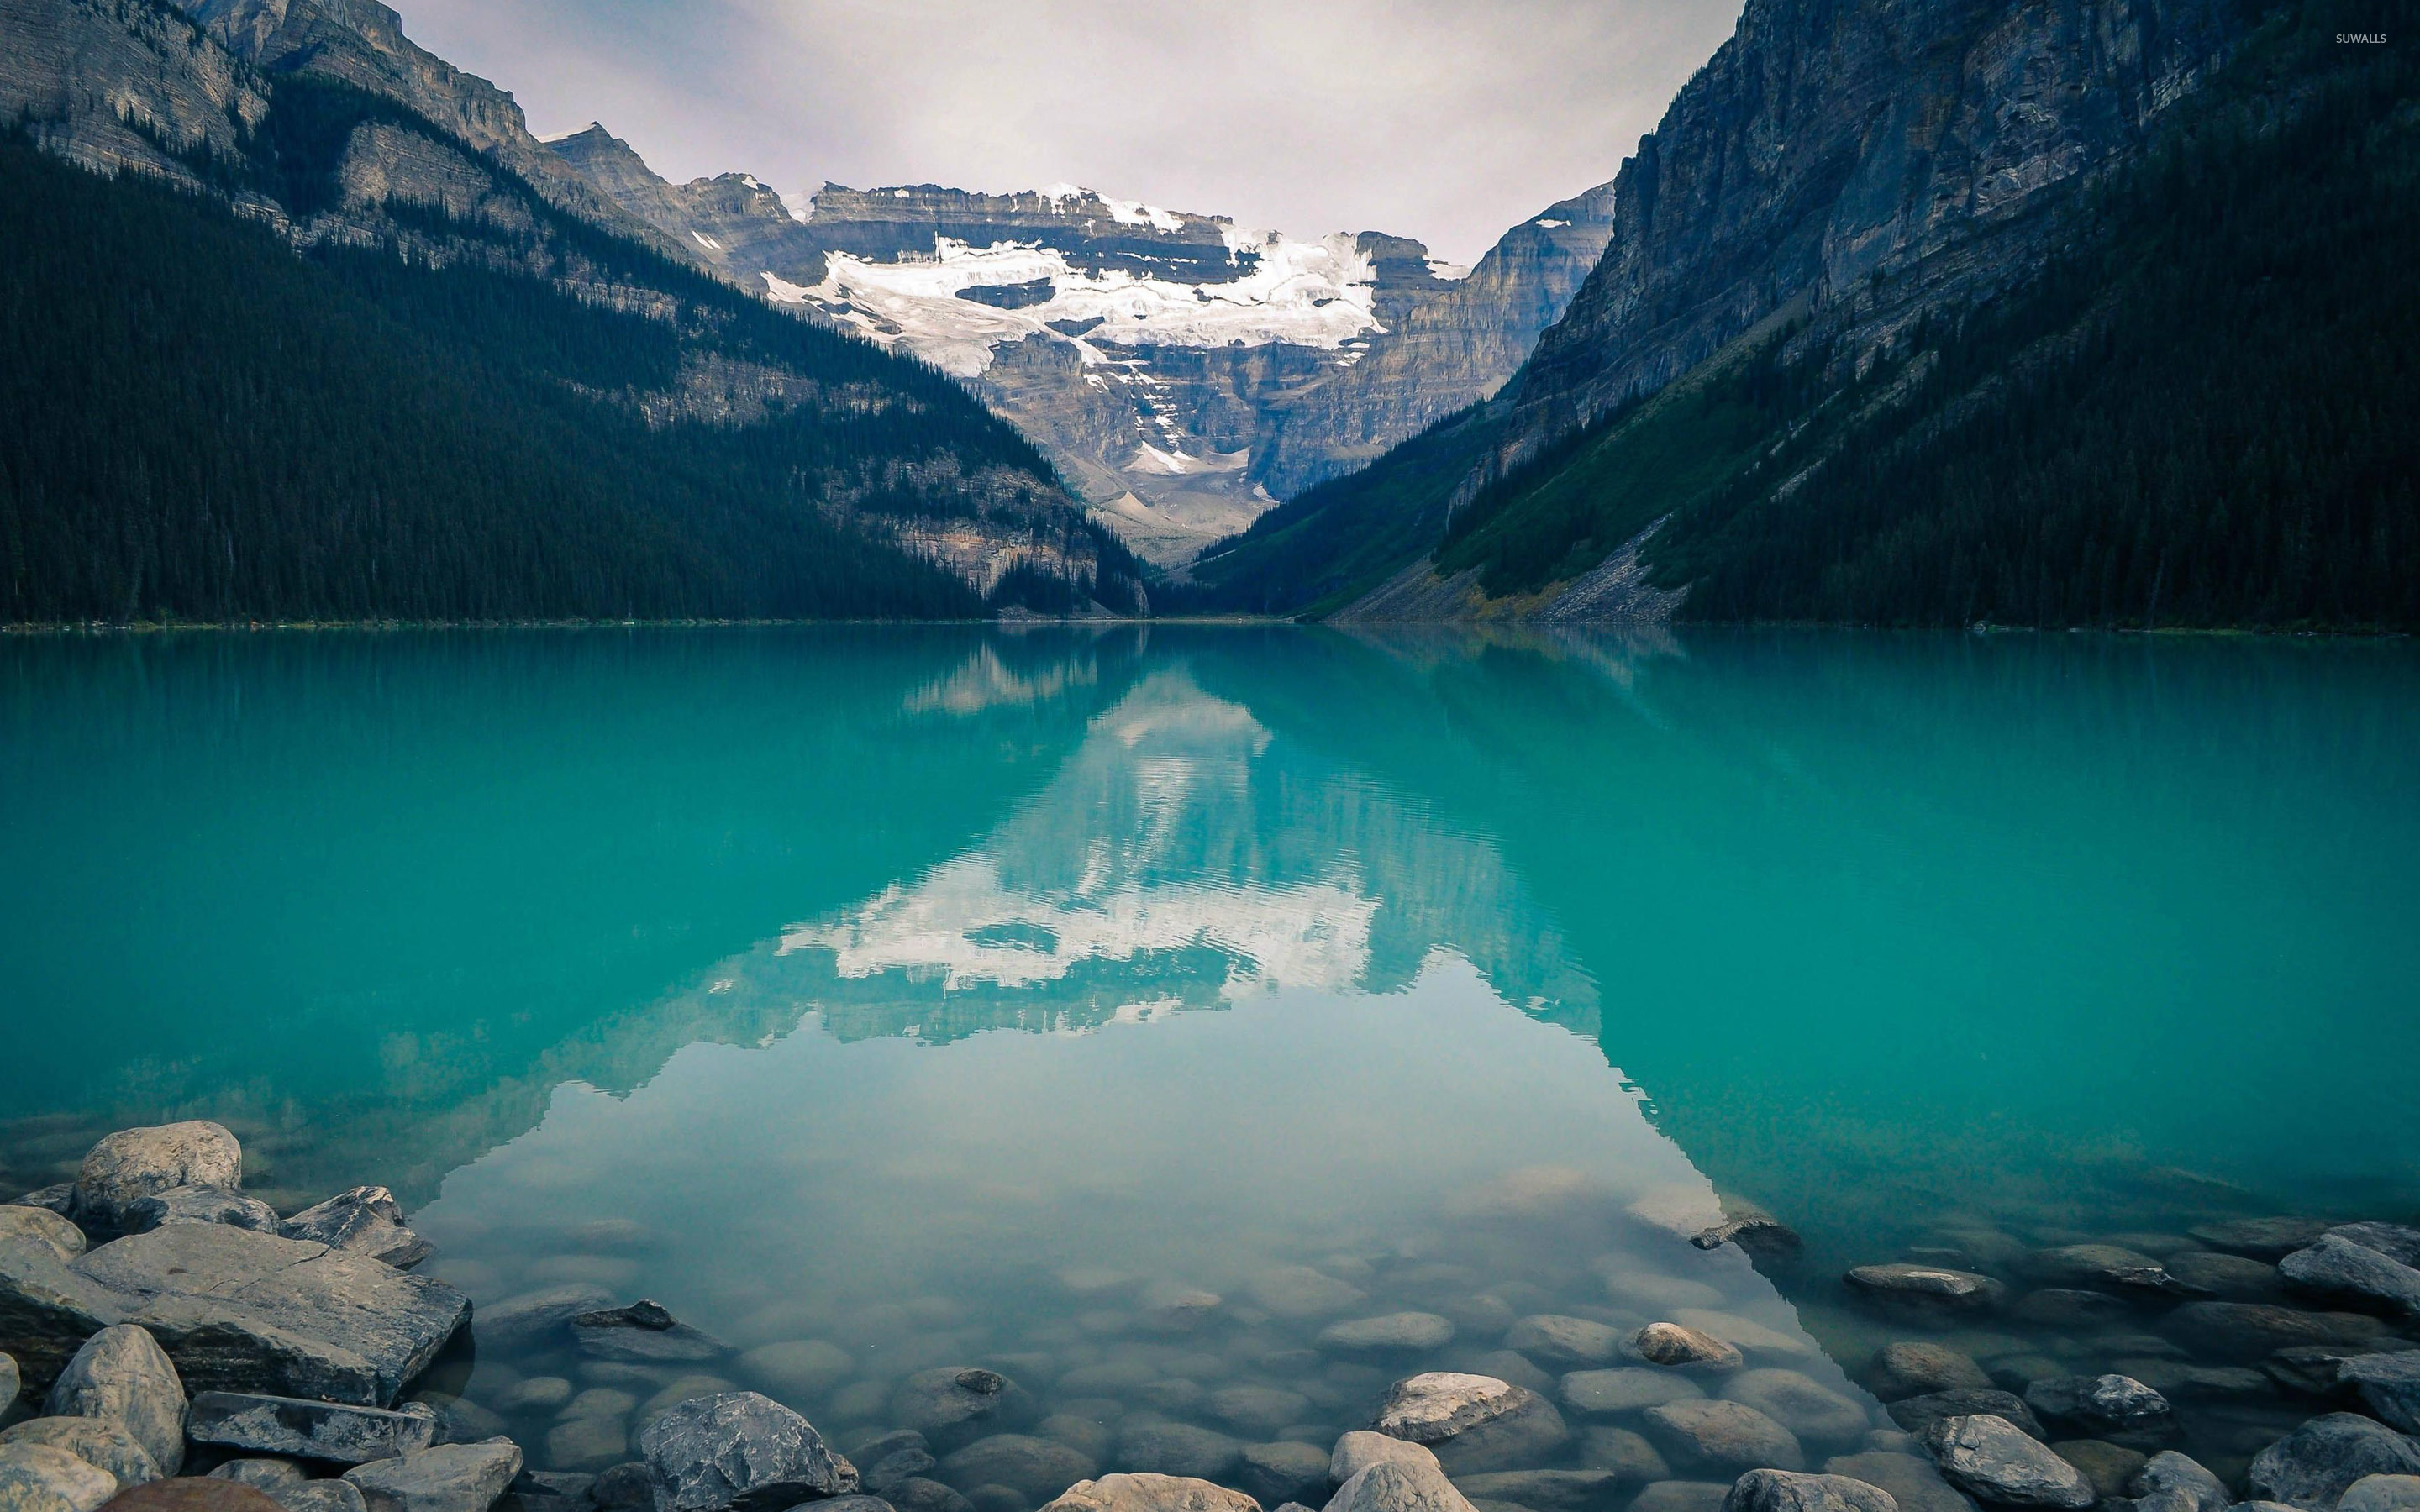 HD Canada Wallpapers and Photos HD Travel Wallpapers